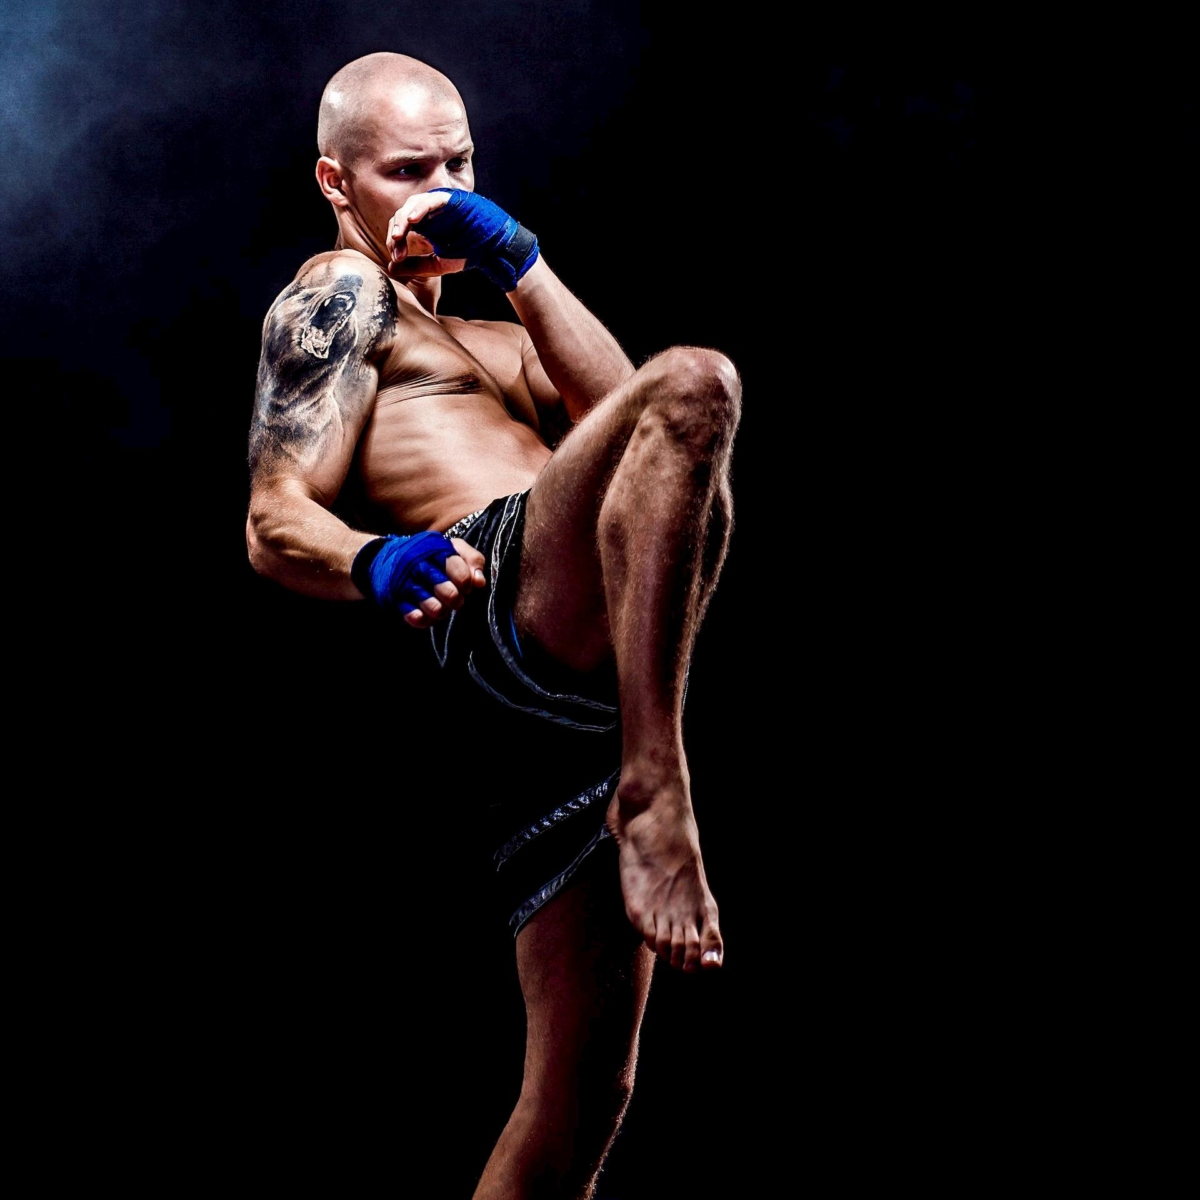 muscular-muay-thai-fighter-punching-darkness-squared